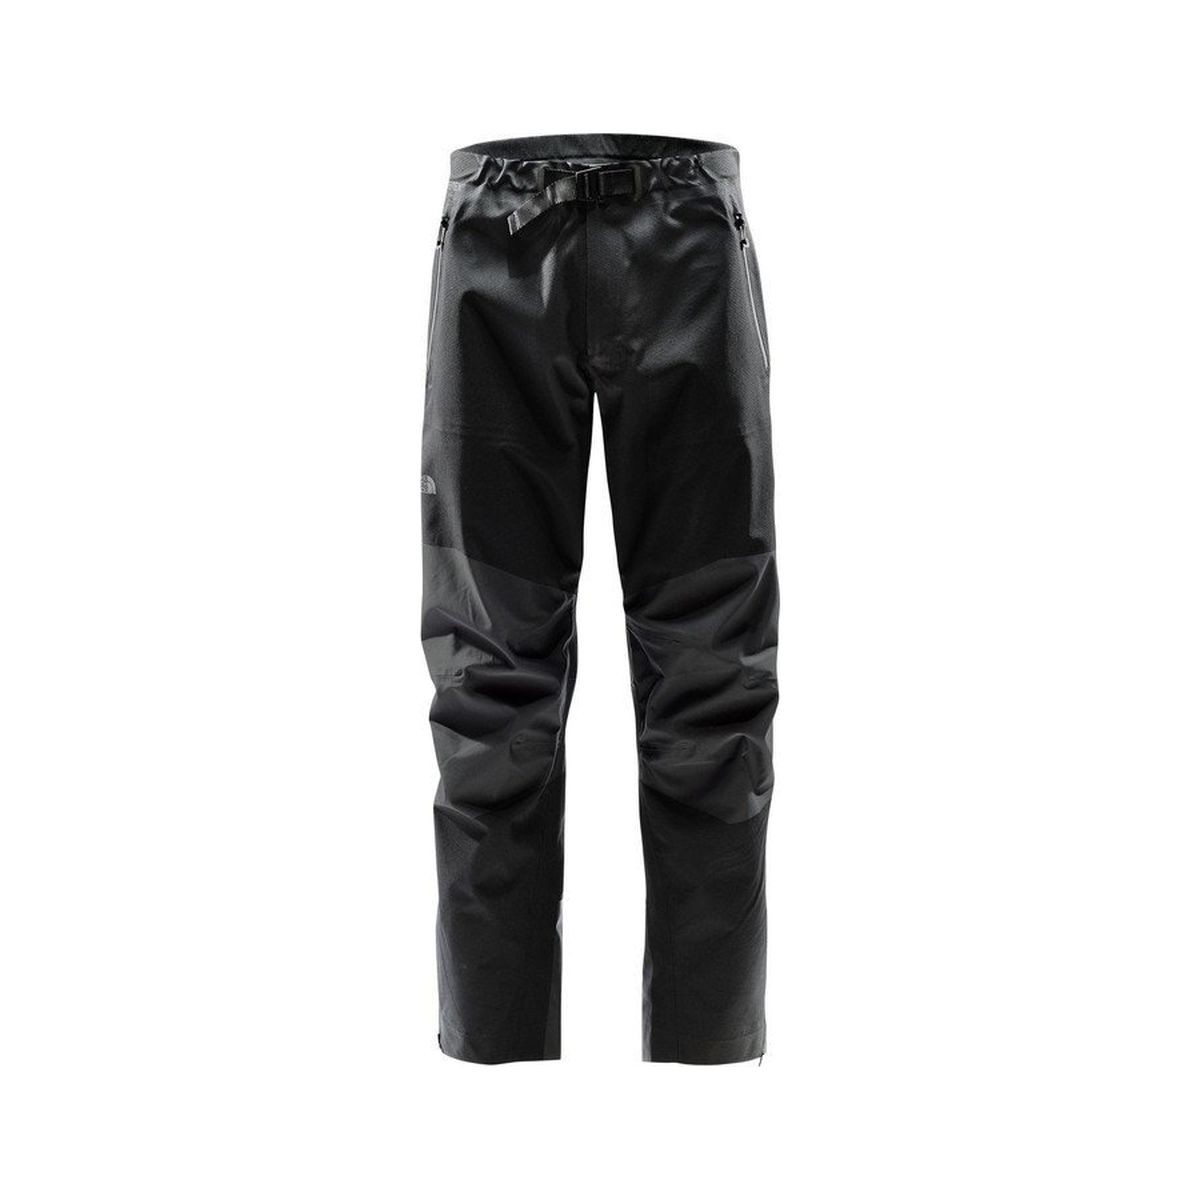 THE NORTH FACE - SUMMIT L5 PANT W - WOMEN